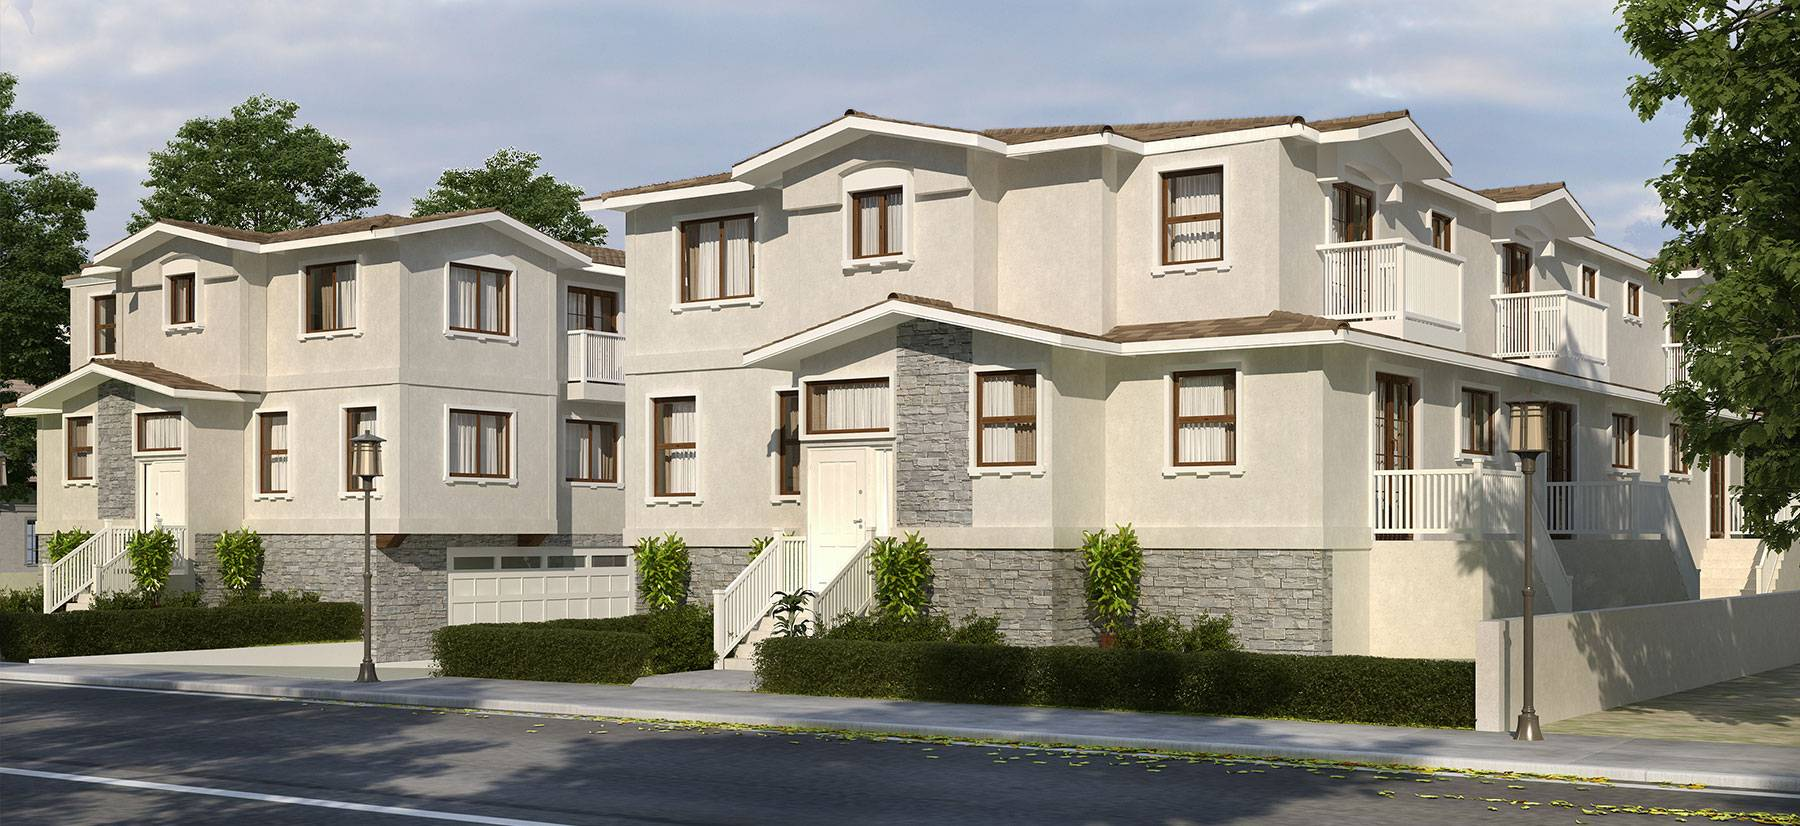 sample multi-family housing project by the City government of San Jose